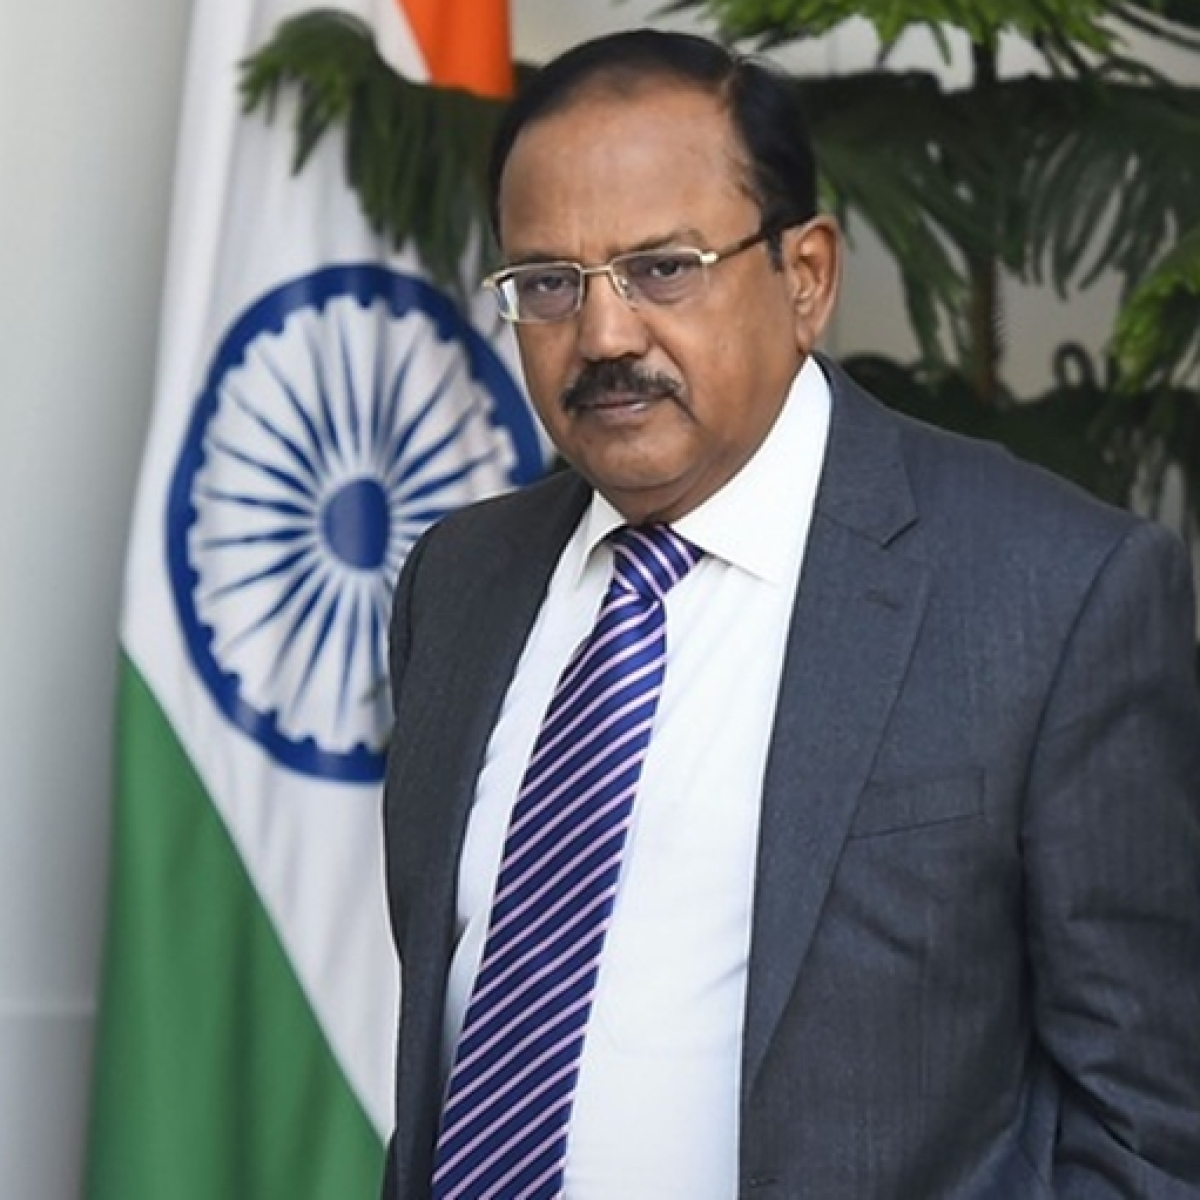 What did Ajit Doval discuss with the Chinese Foreign Minister? Here's the full text from the MEA